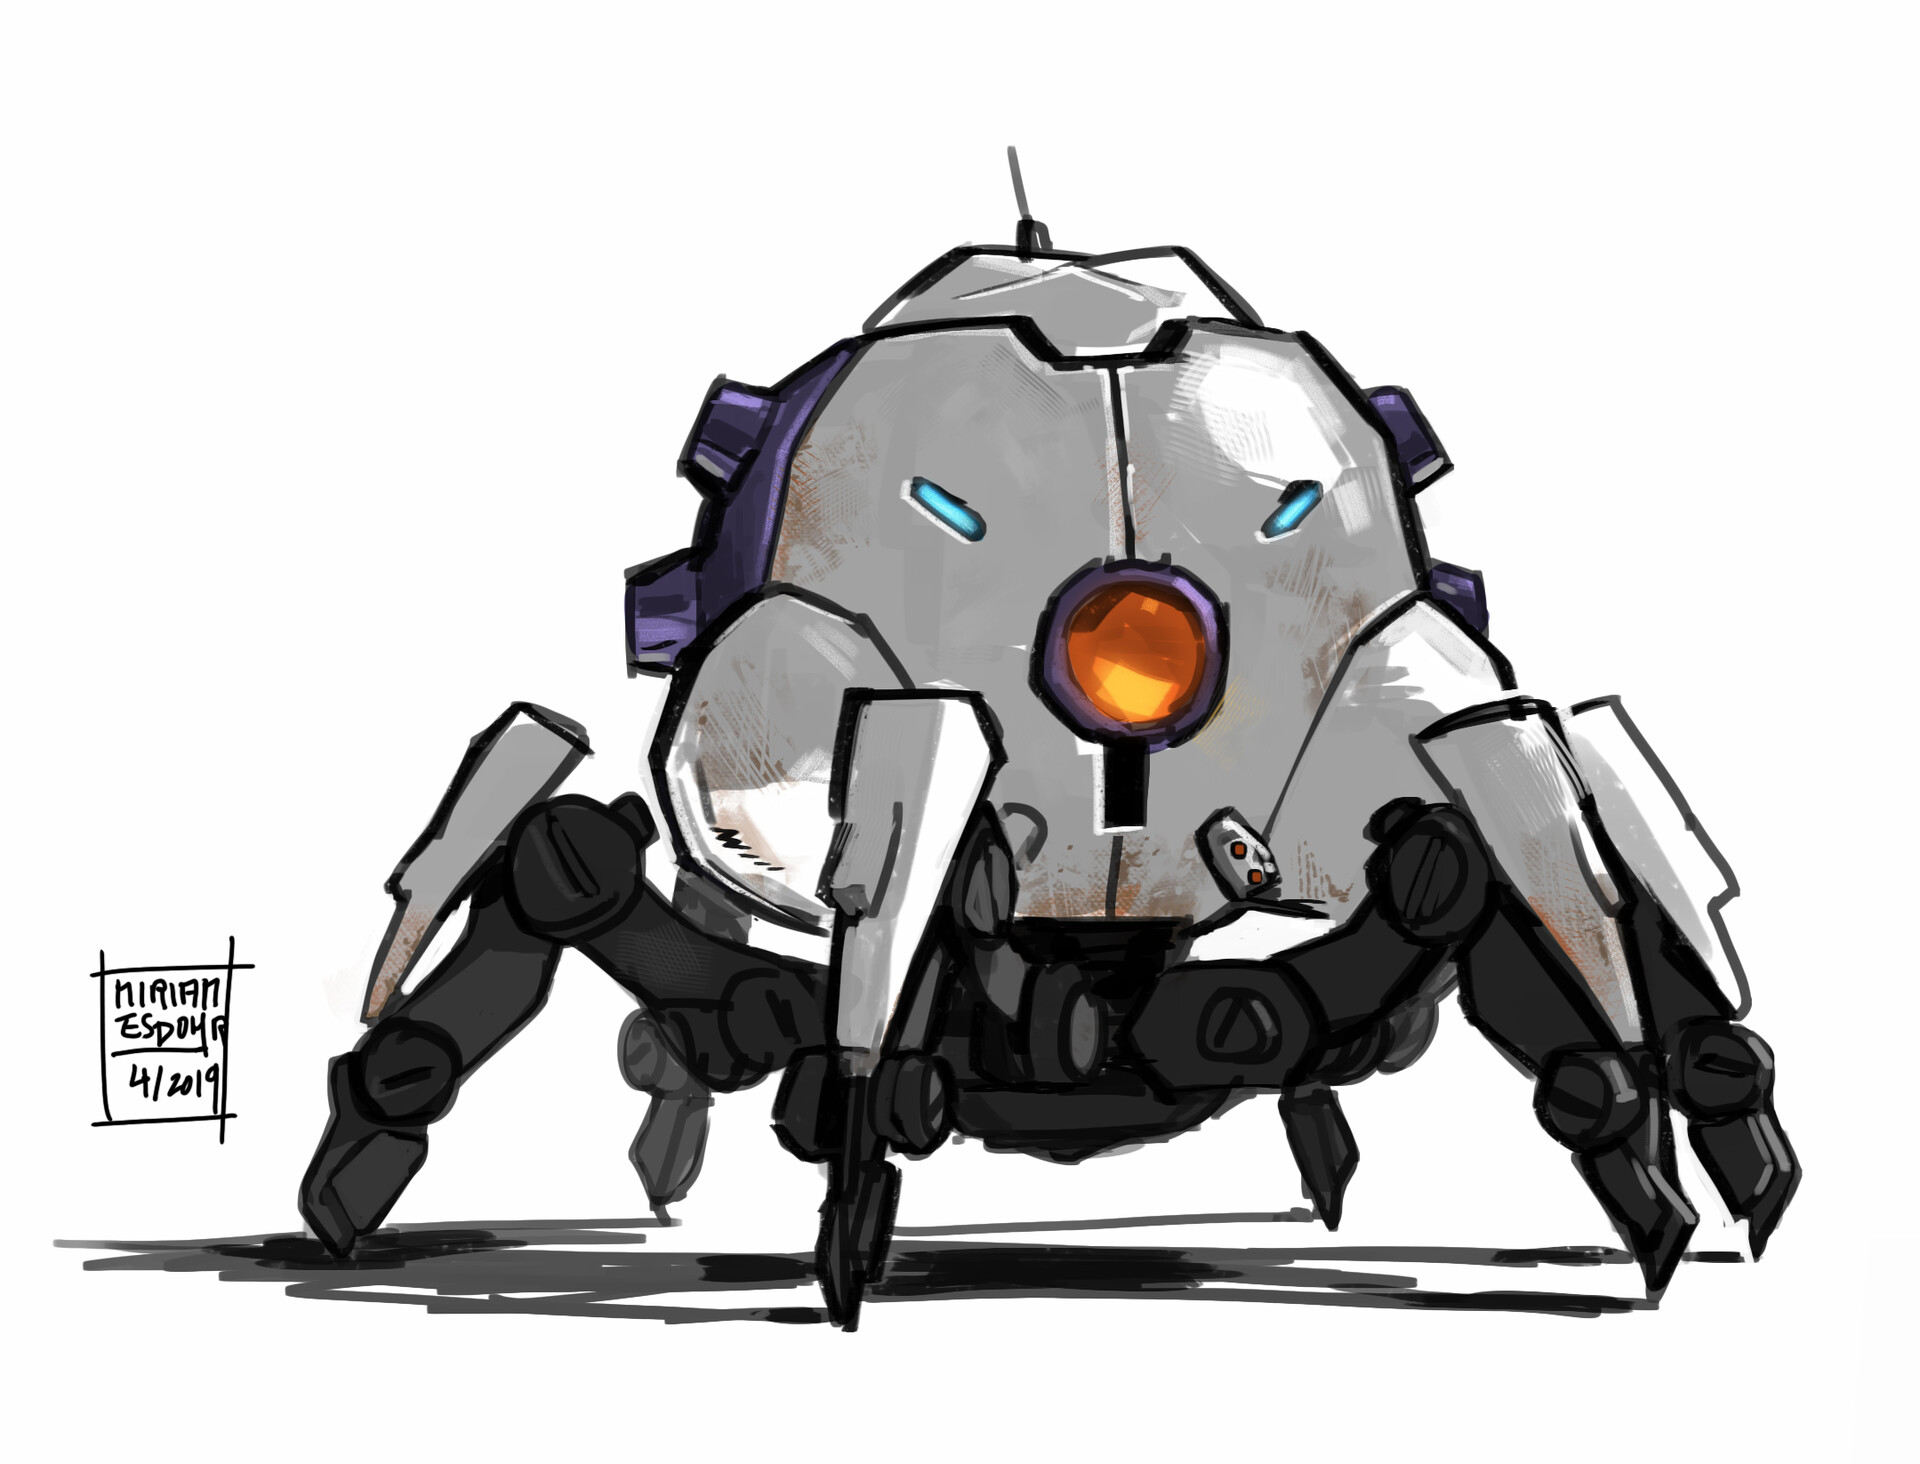 Smolbot done in Photoshop